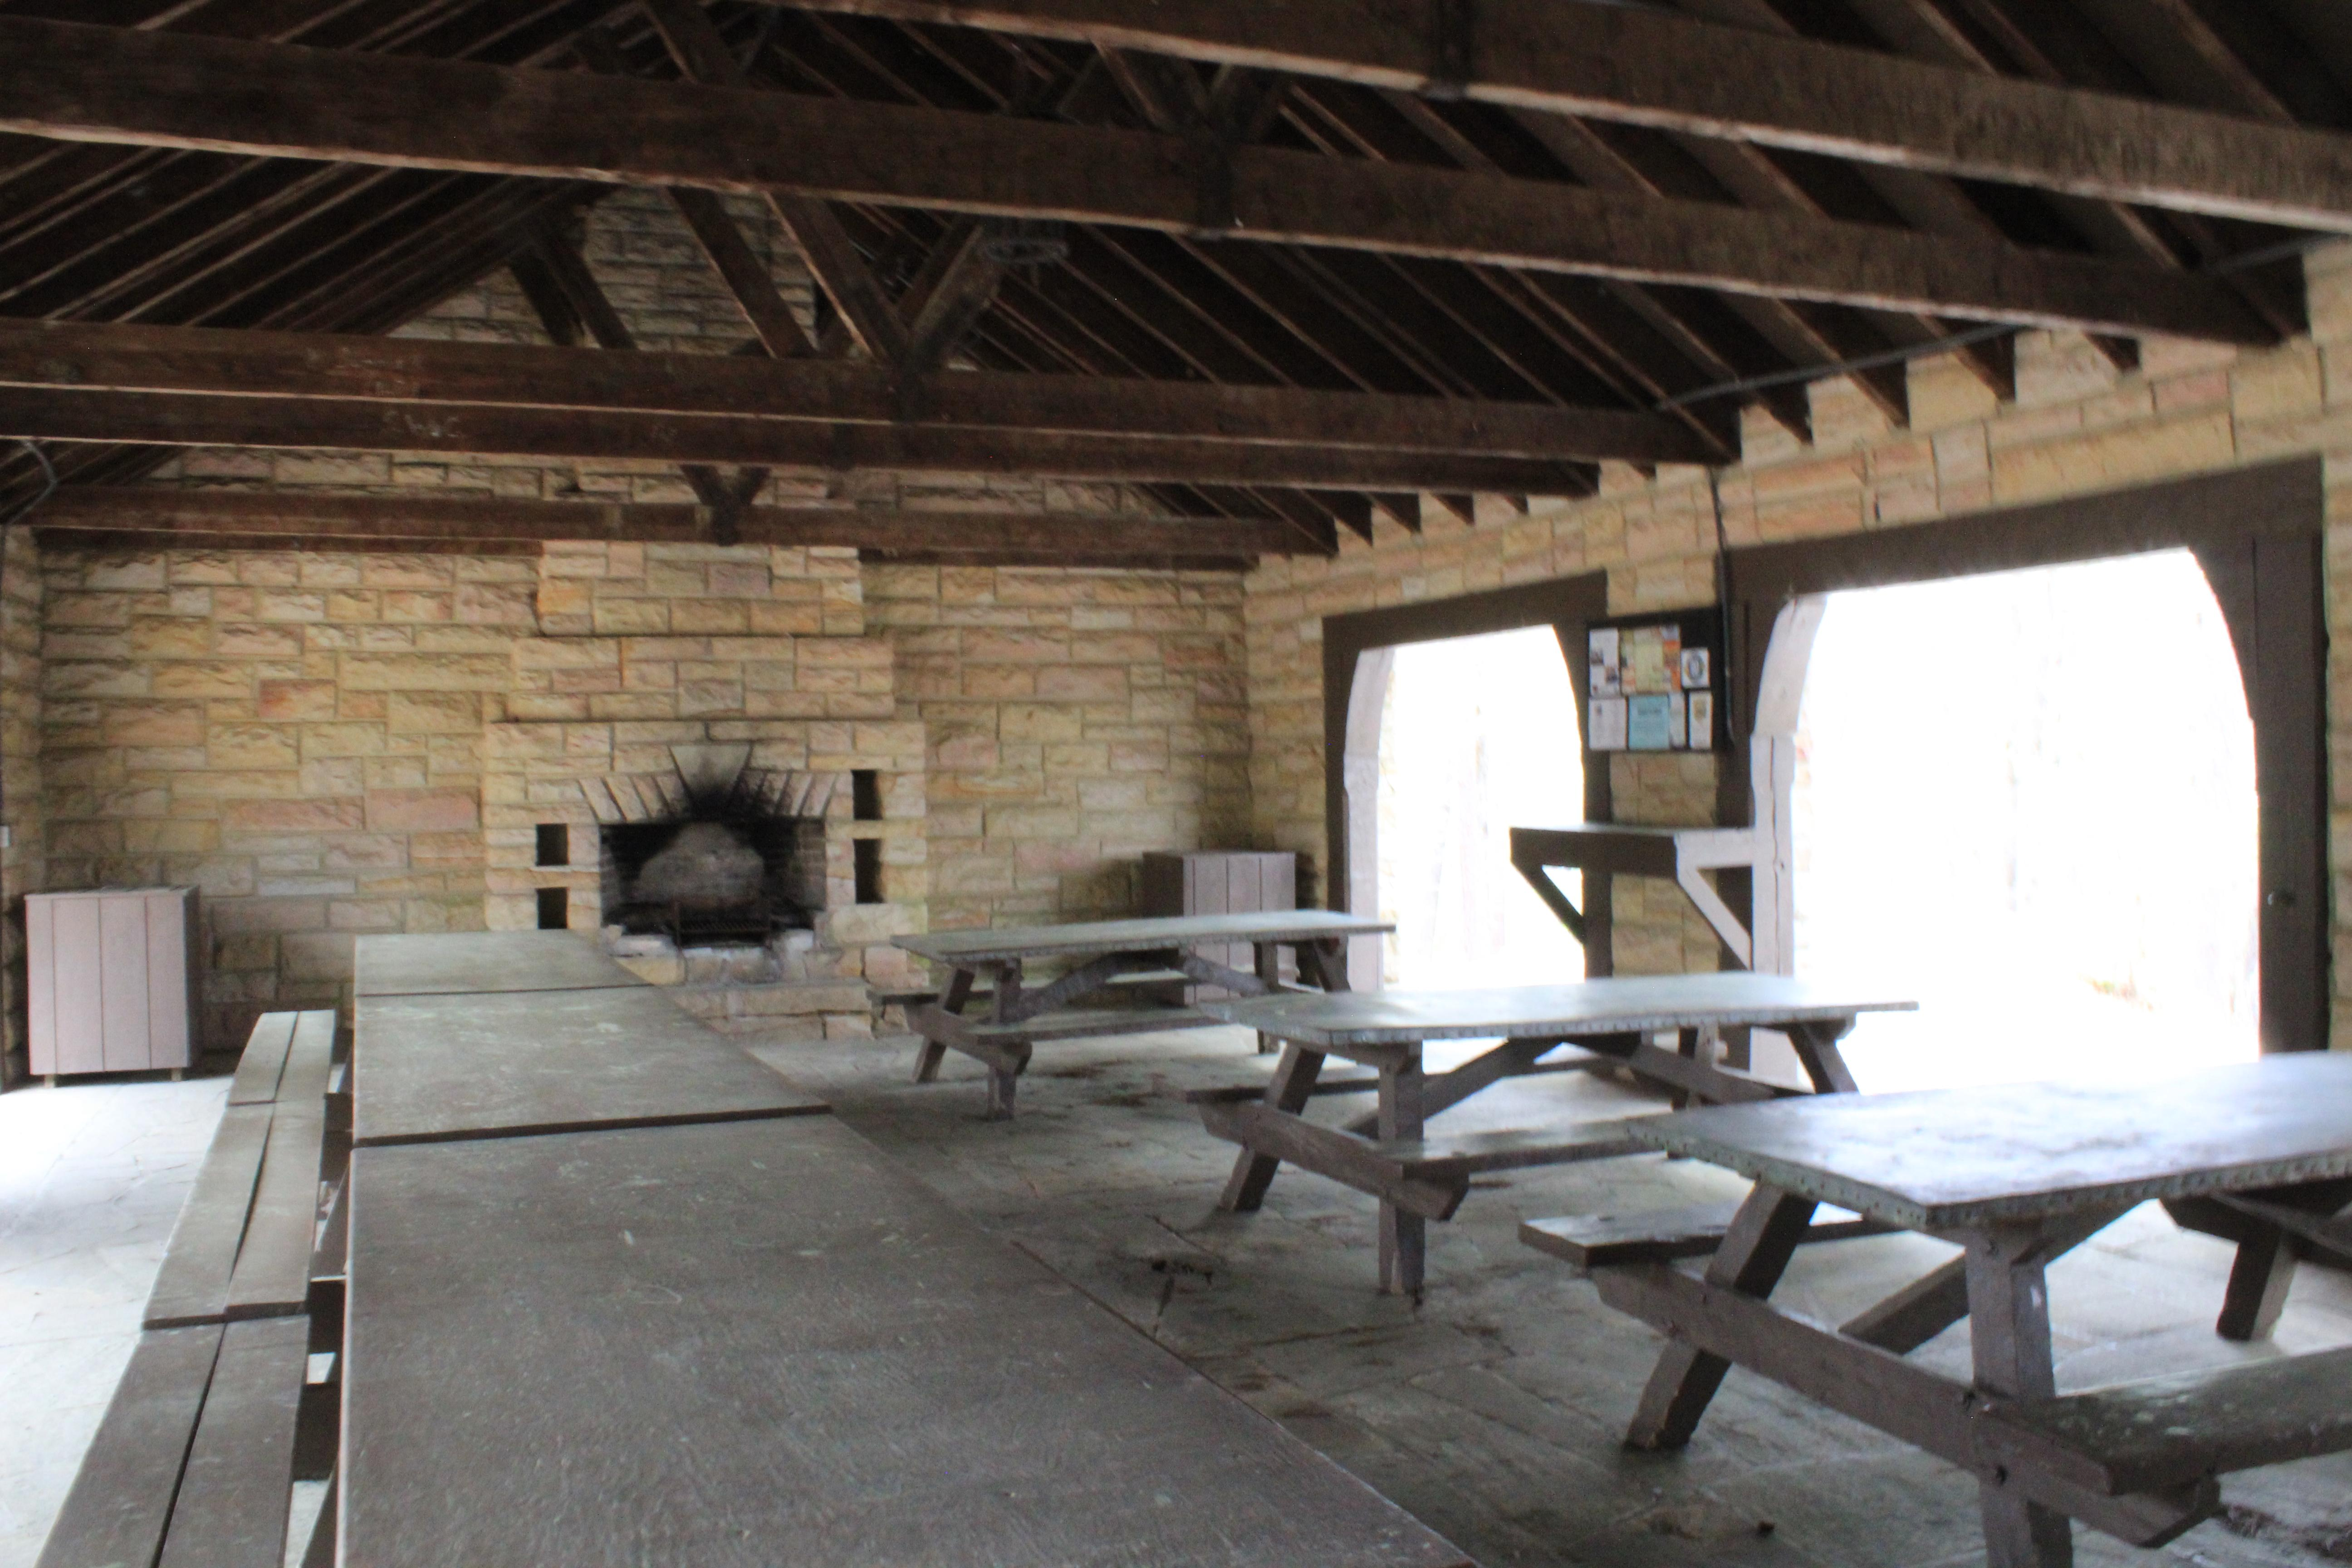 Picnic Shelter #1 Inside